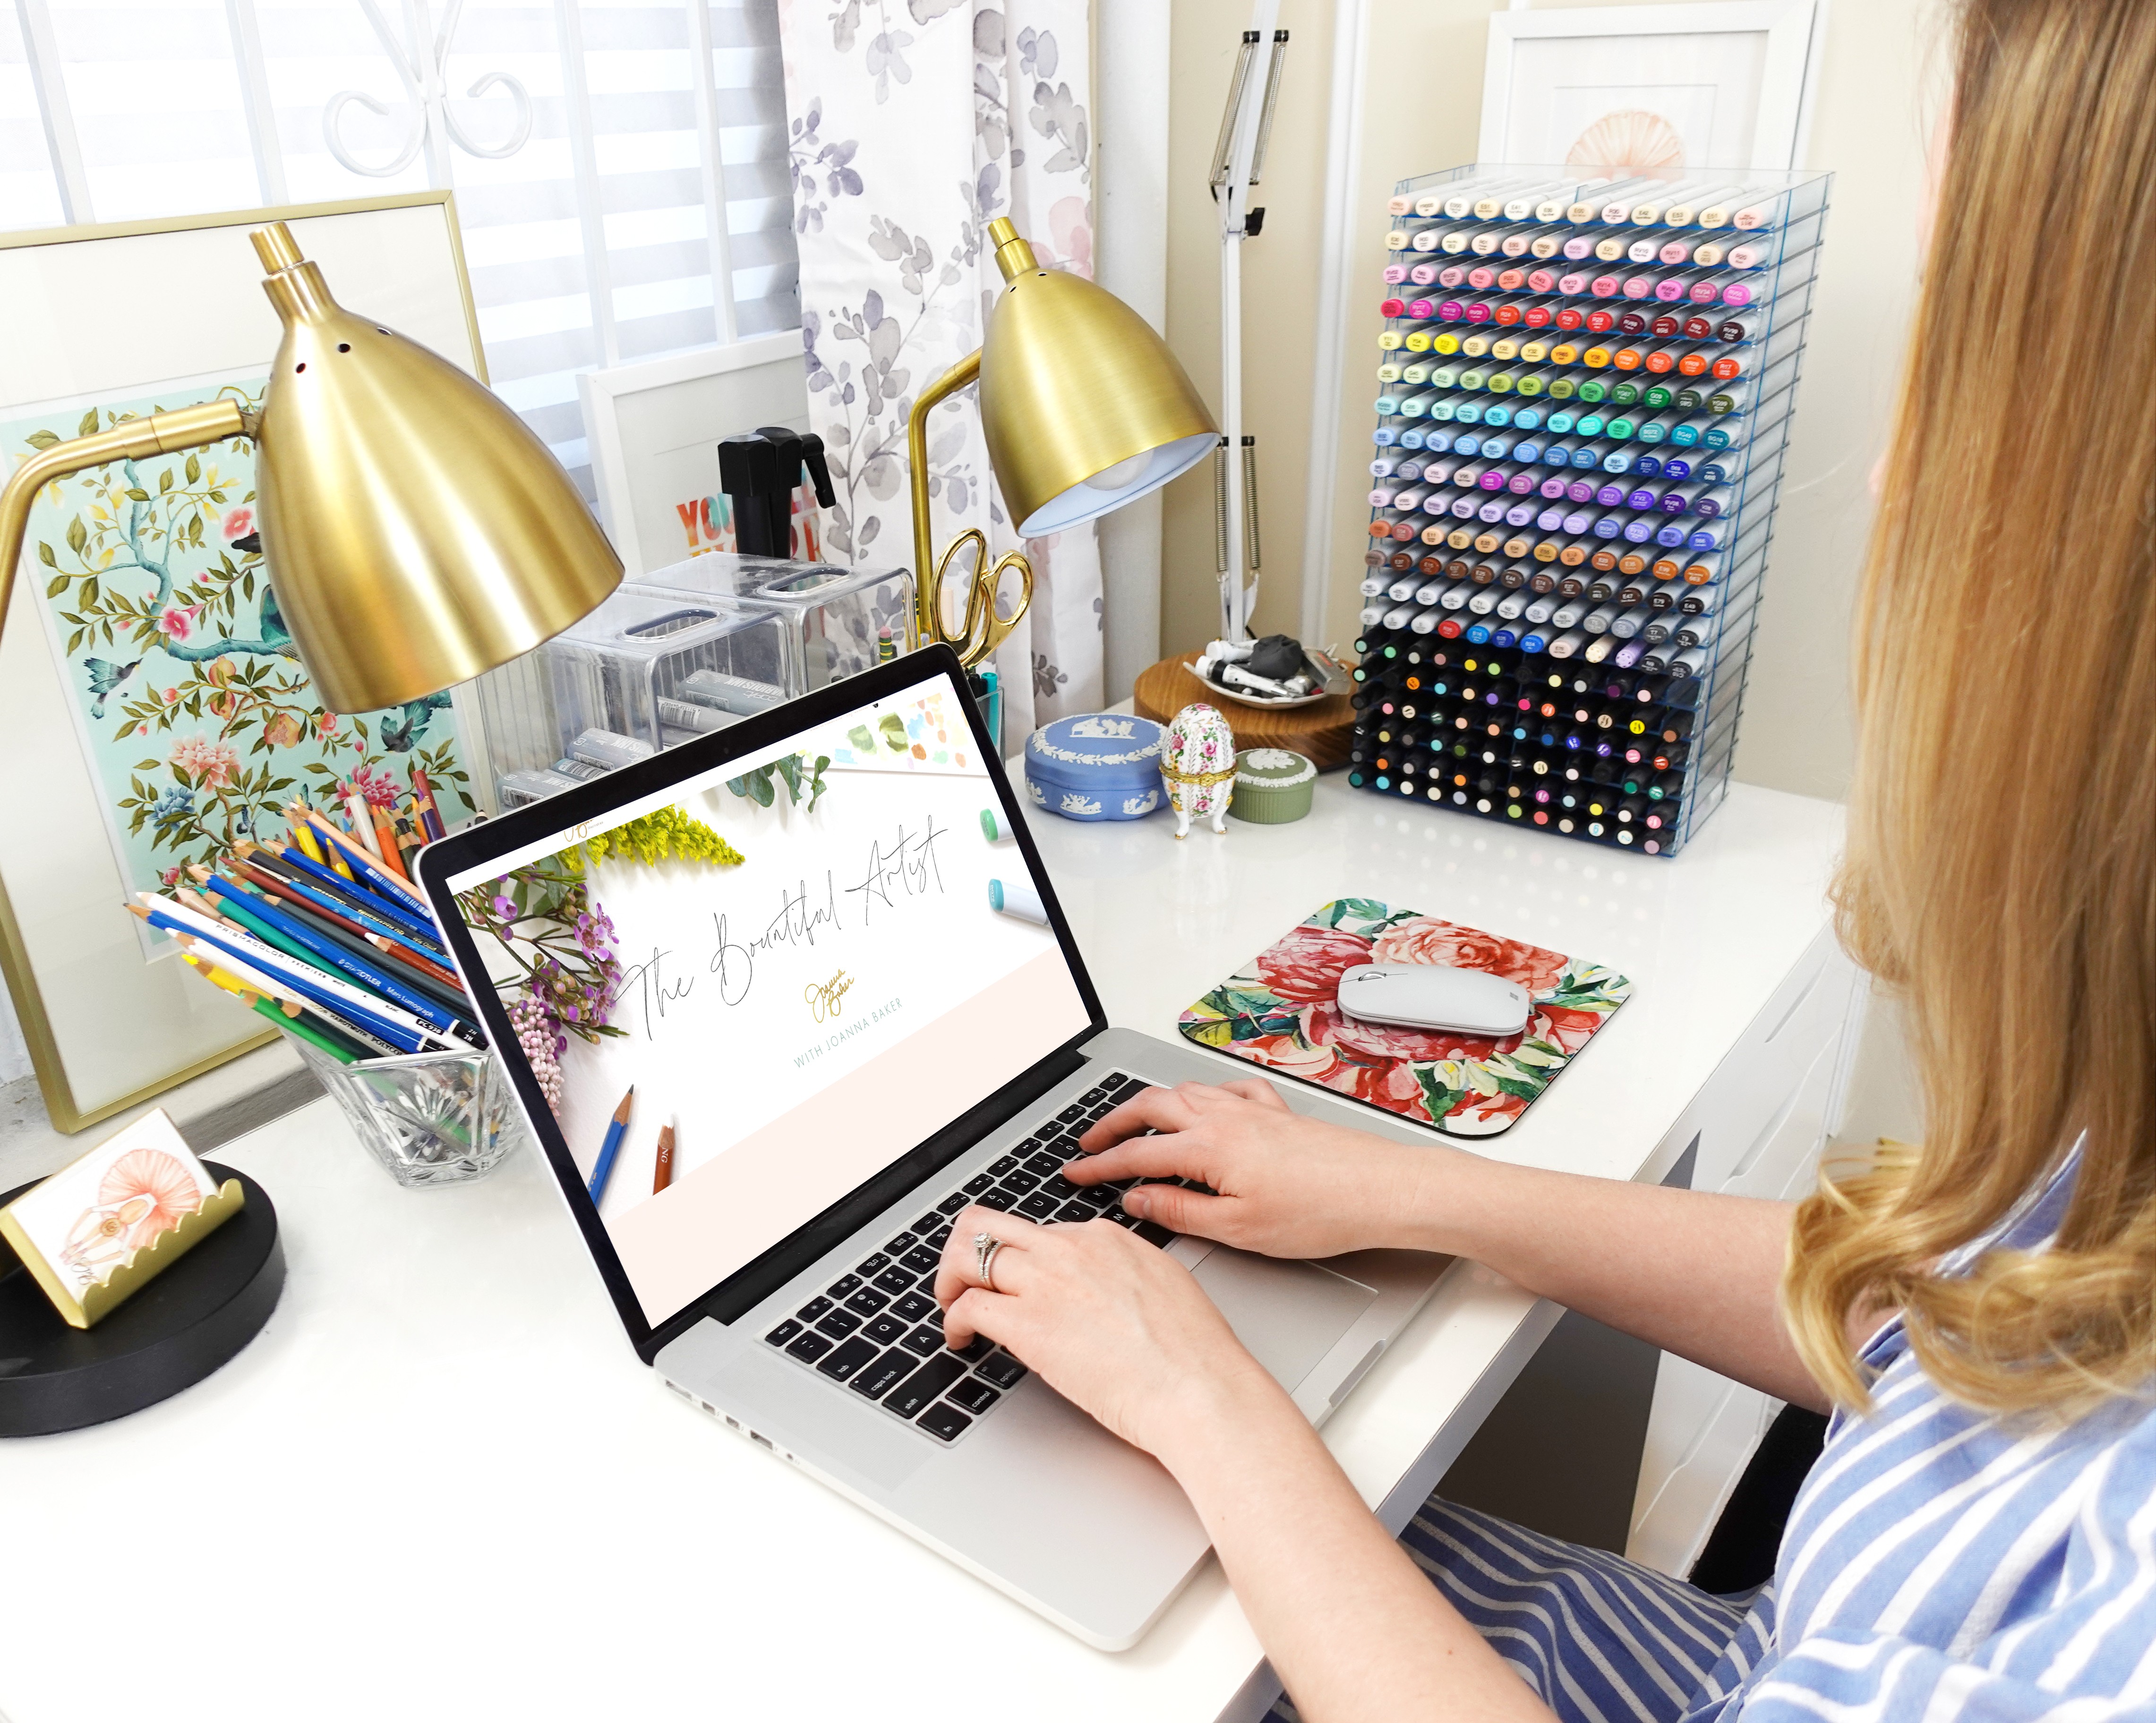 Join The Bountiful Artist Monthly Illustration Membership with Joanna Baker